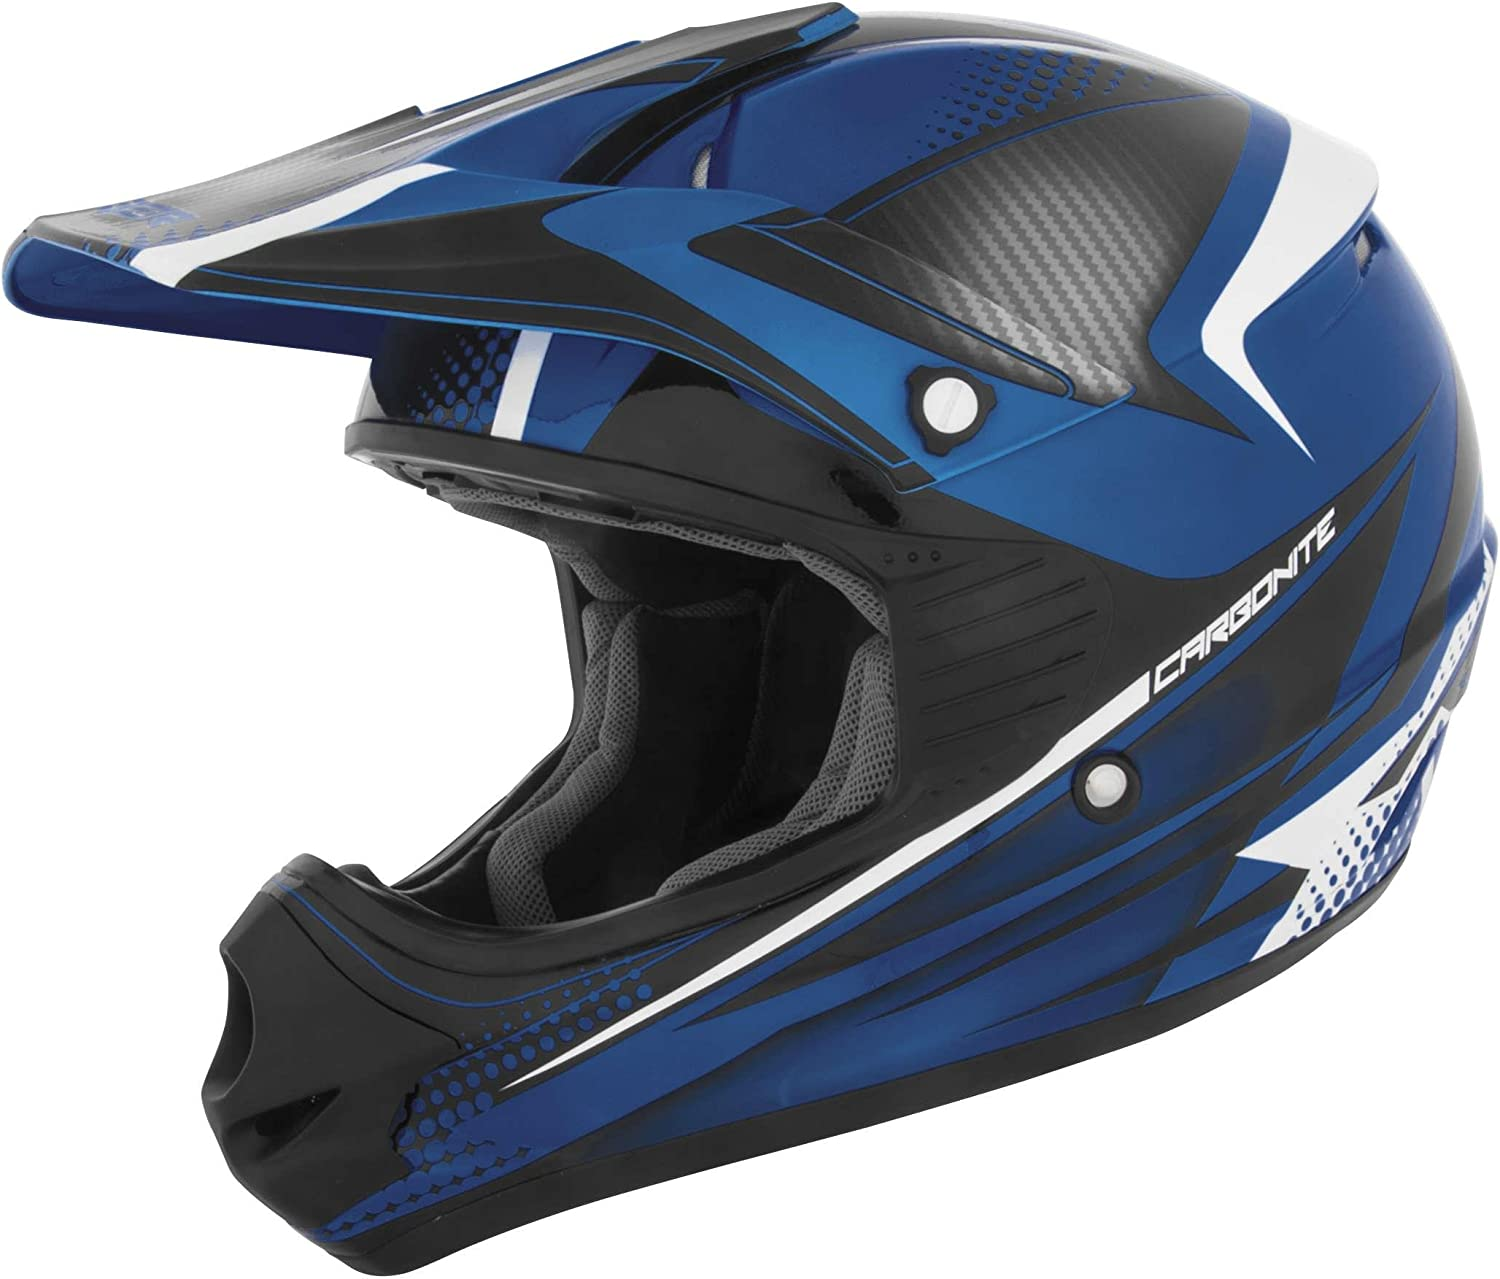 Cyber Helmets UX-23 Youth Helmet Electric Blue Blue, Large